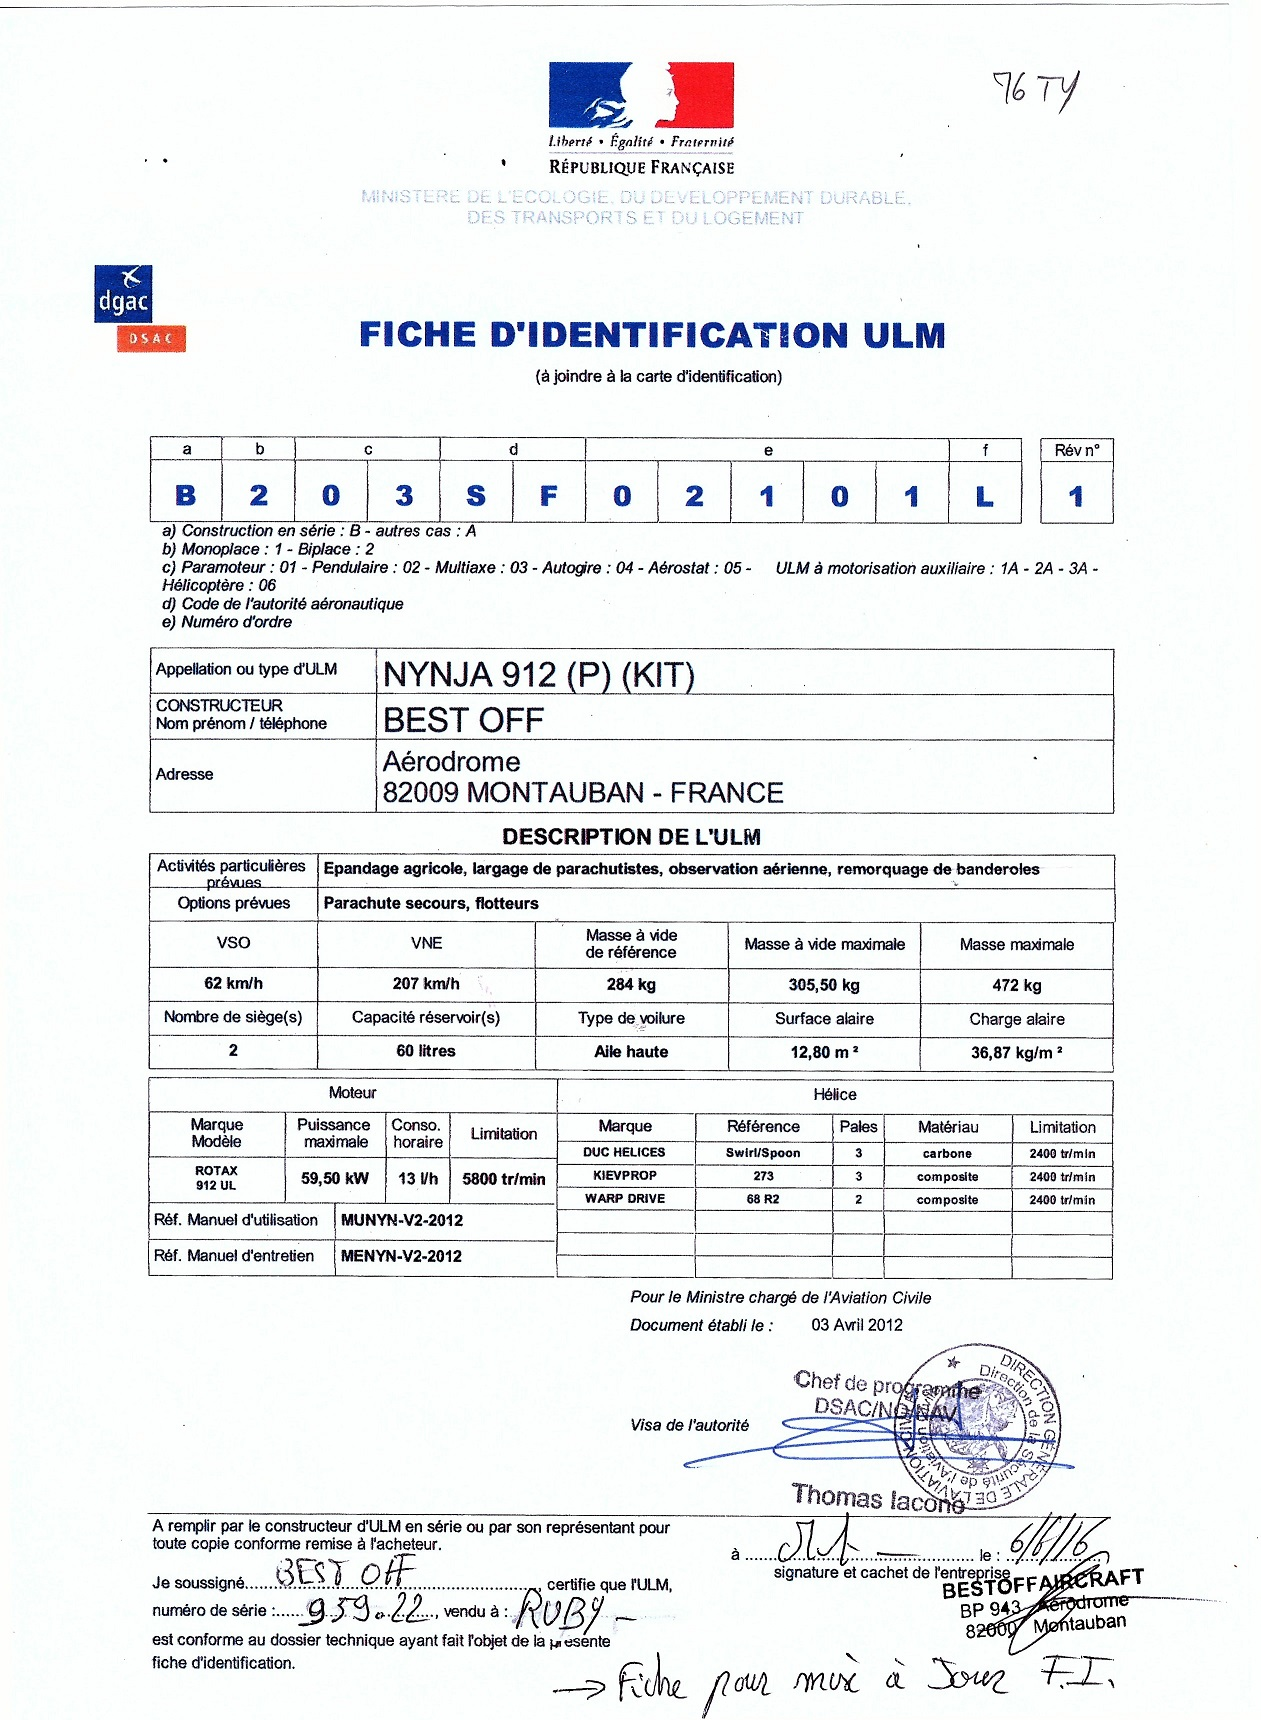 Fiche ident nynja